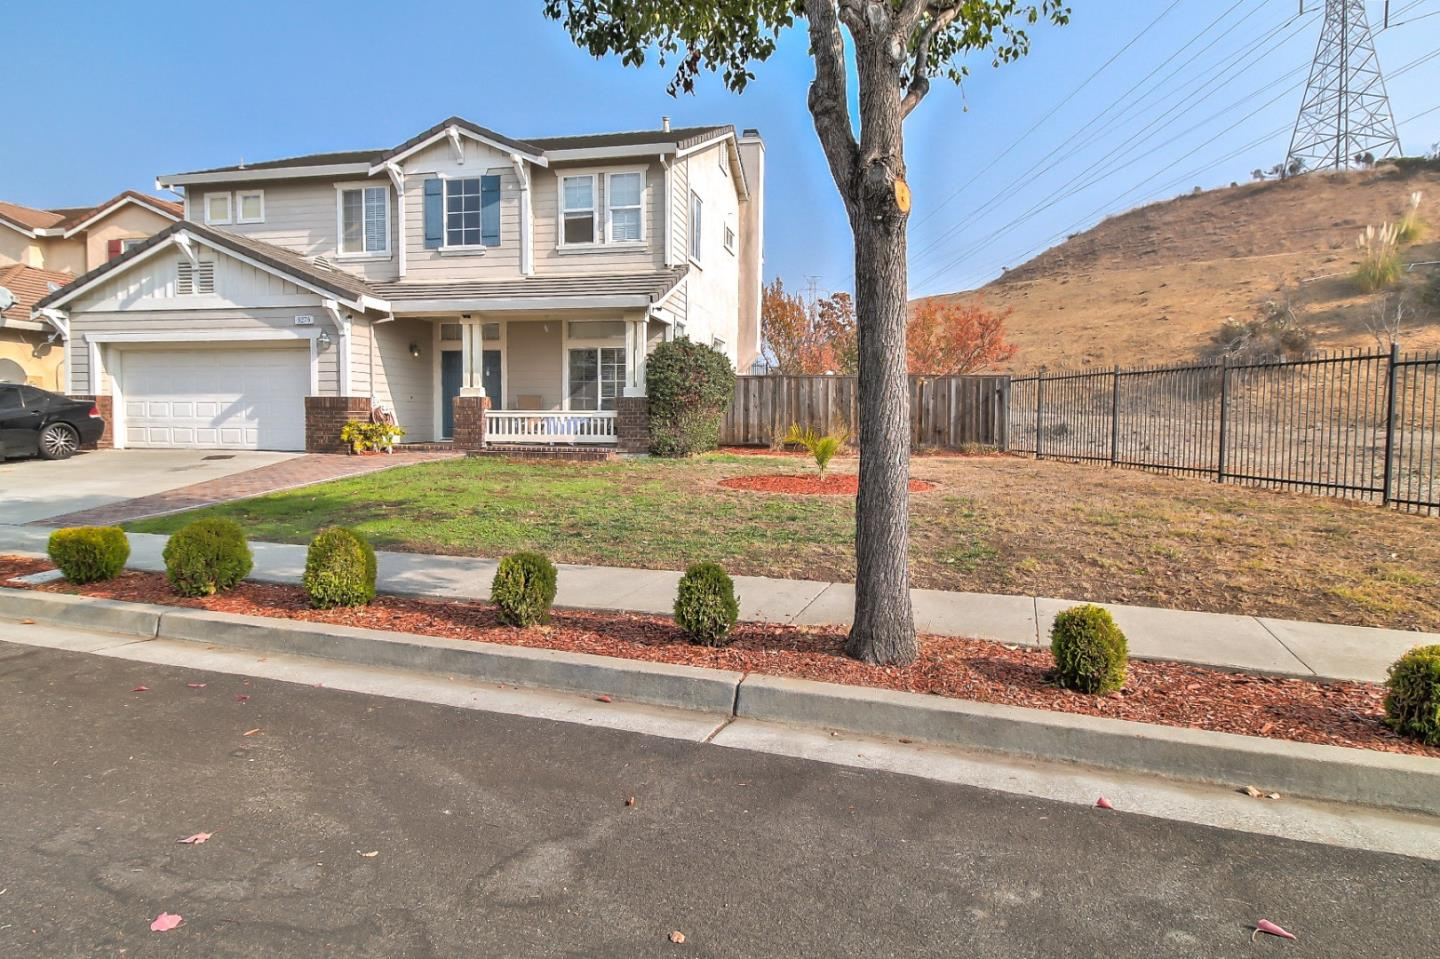 Image for 5275 Misty Spring Drive, <br>Castro Valley 94552